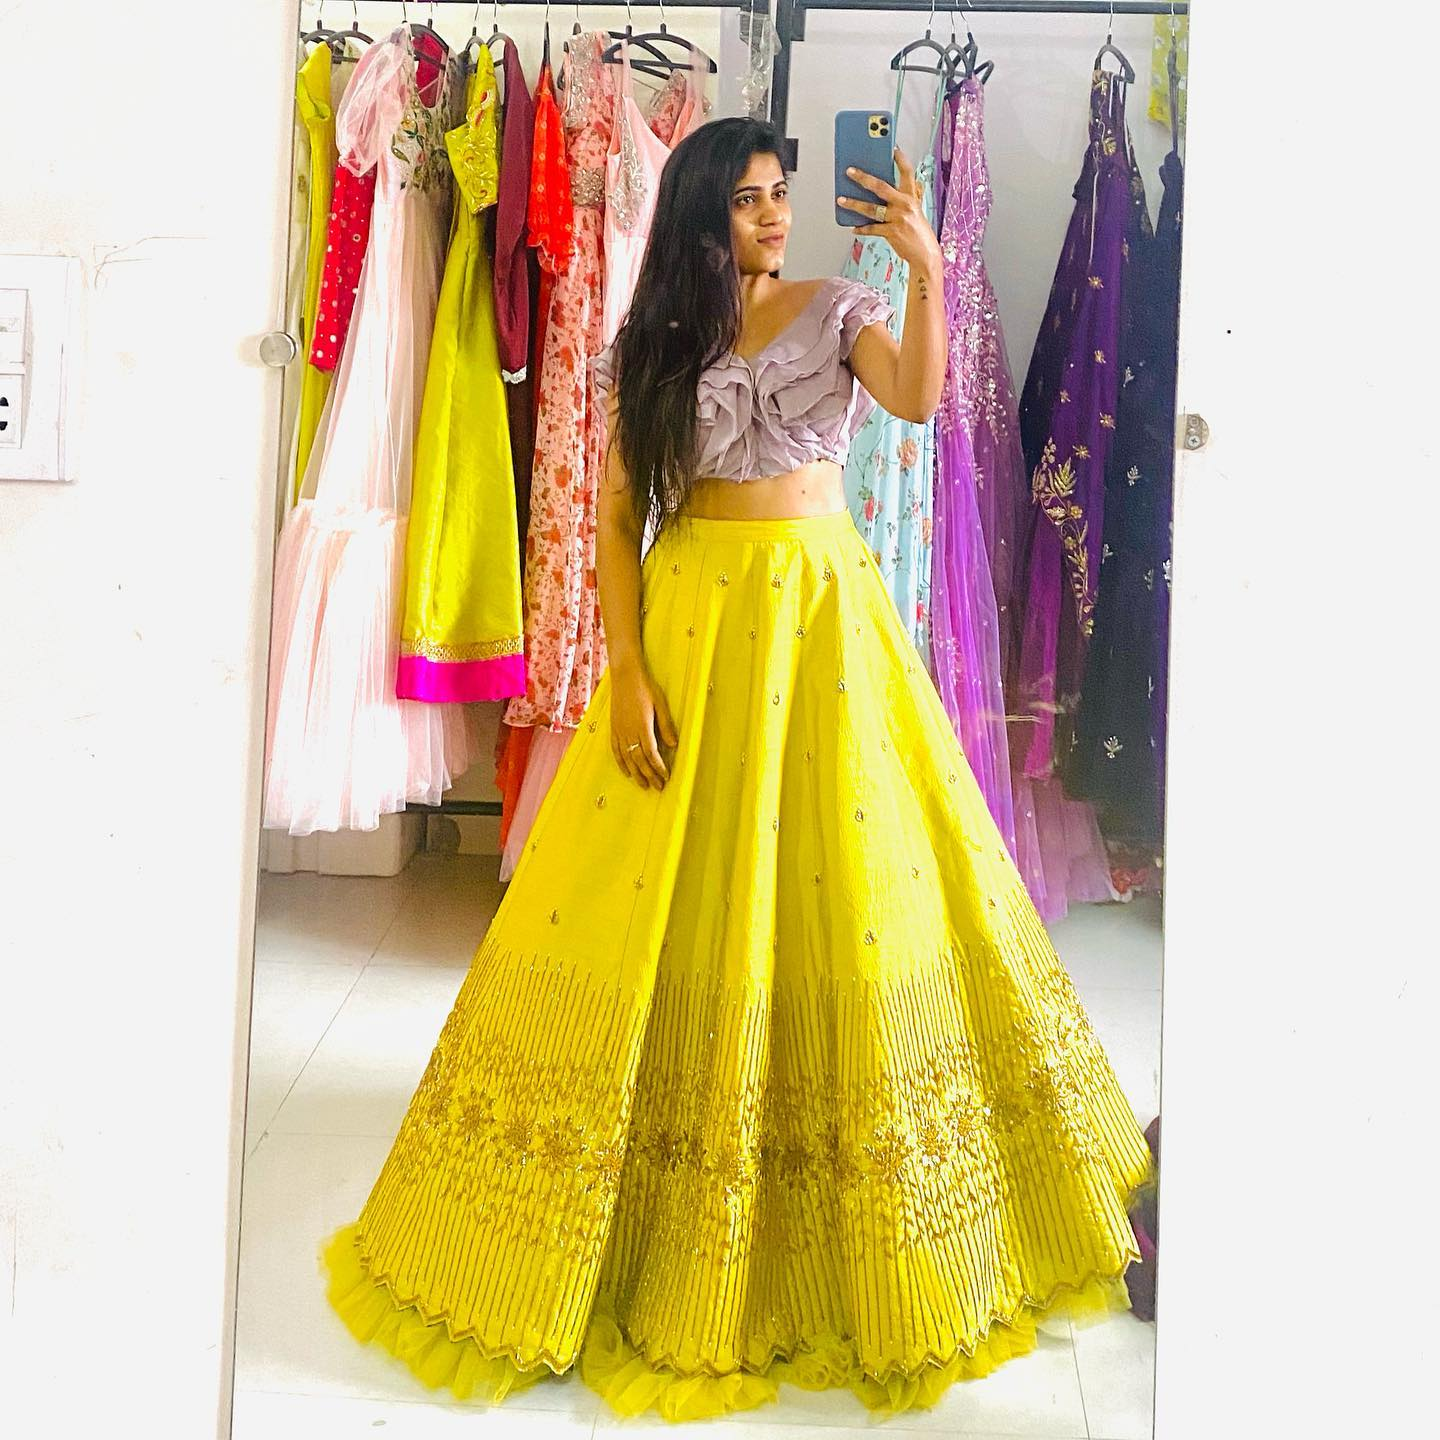 Stunning yellow color skirt and lavender ruffle crop top. Skirt with hand embroidery work.  2021-09-07